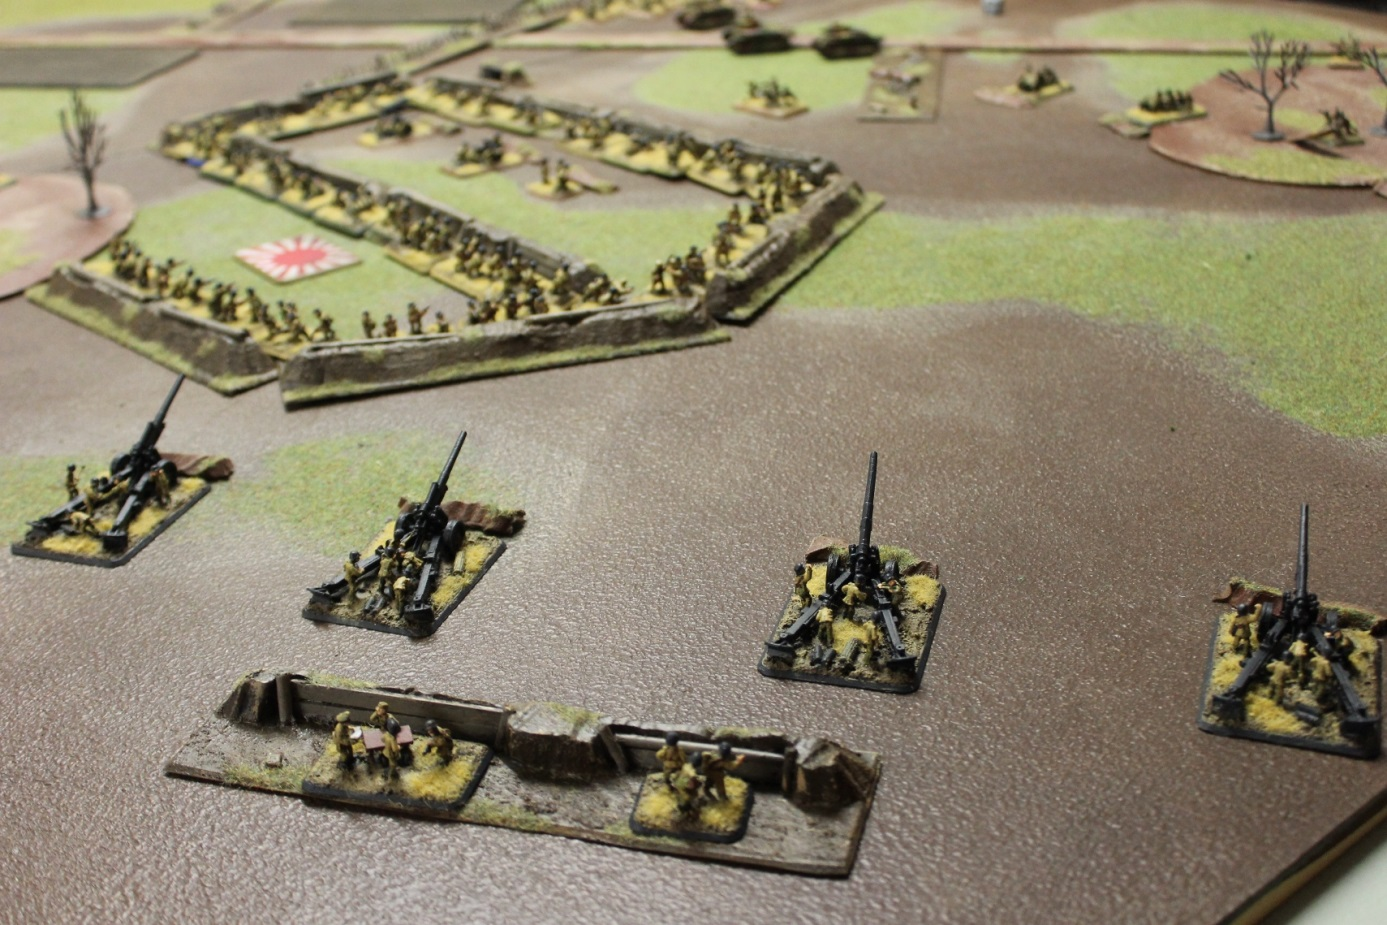 The heavy artillery finds the IJA infantry close together in the open as day breaks.